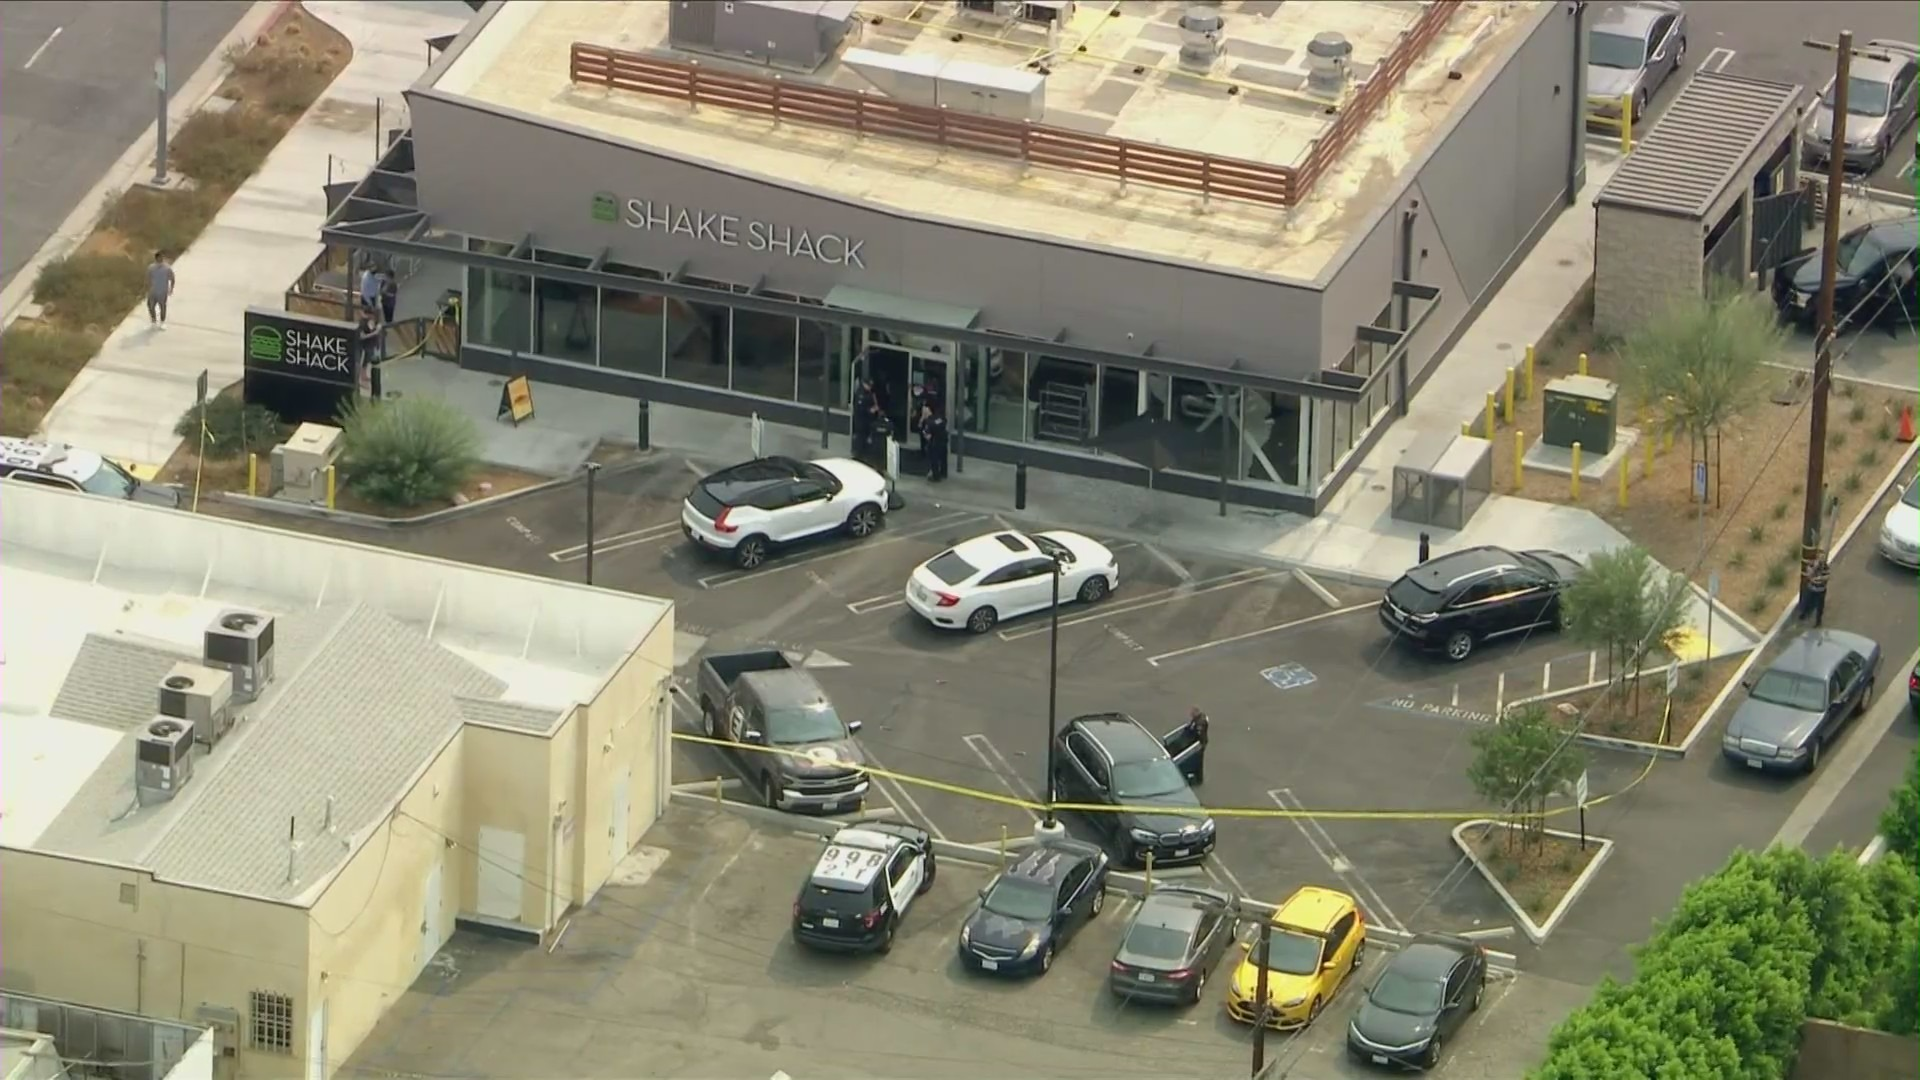 Authorities investigate after a man shot out windows of a Shake Shack in Canoga Park on Sept. 23, 2021. (KTLA)